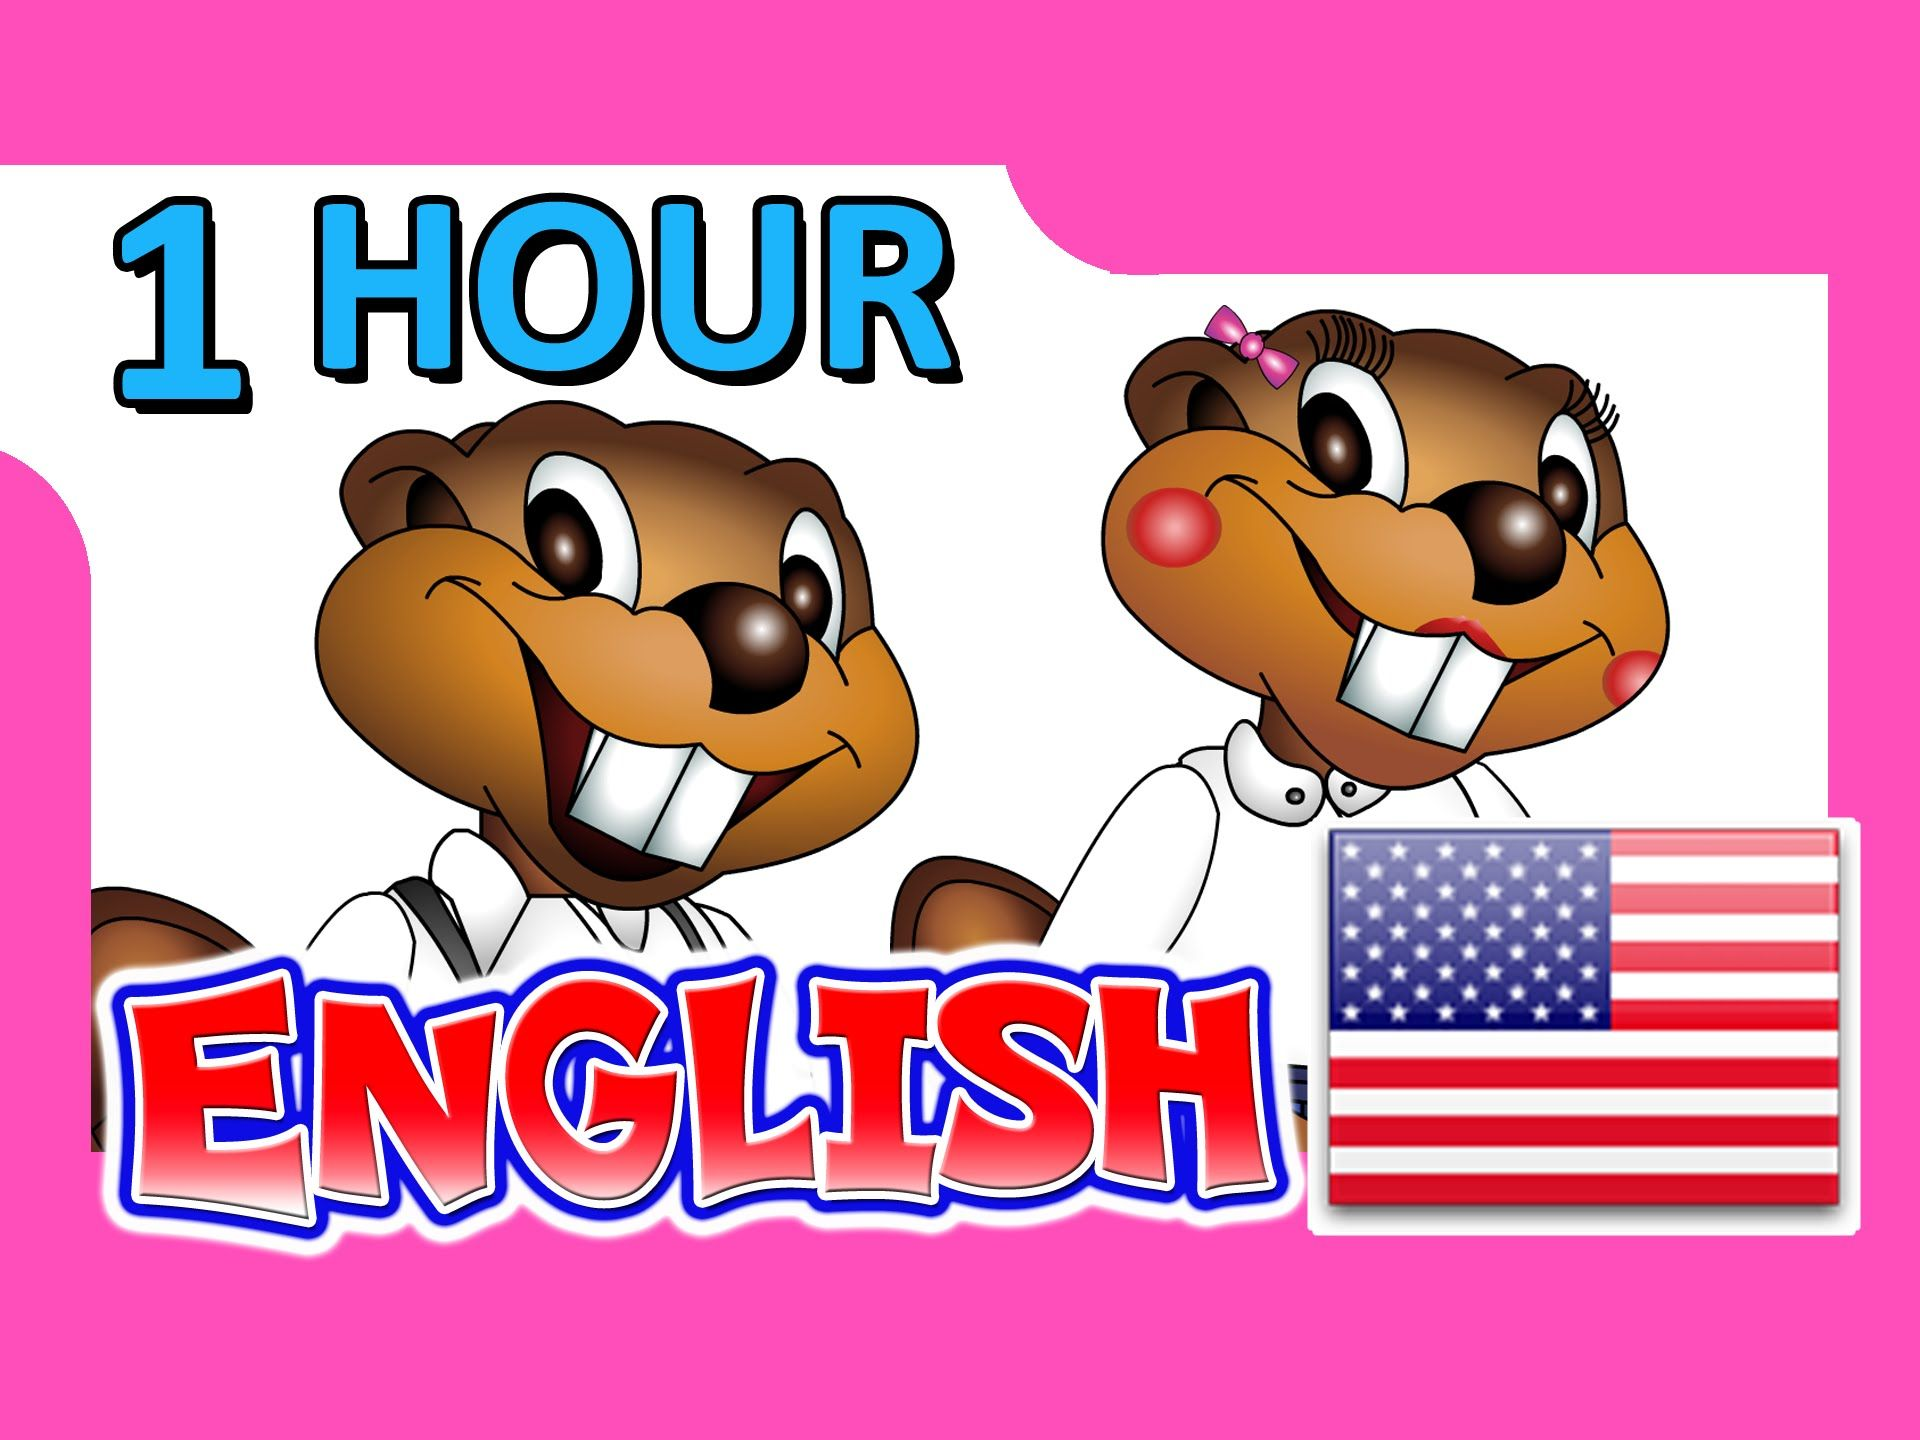 Free jpg clipart for english second language classes clipart freeuse library Check Out Our 1 Hour English Level 2 DVD for Free. It is Full of ... clipart freeuse library